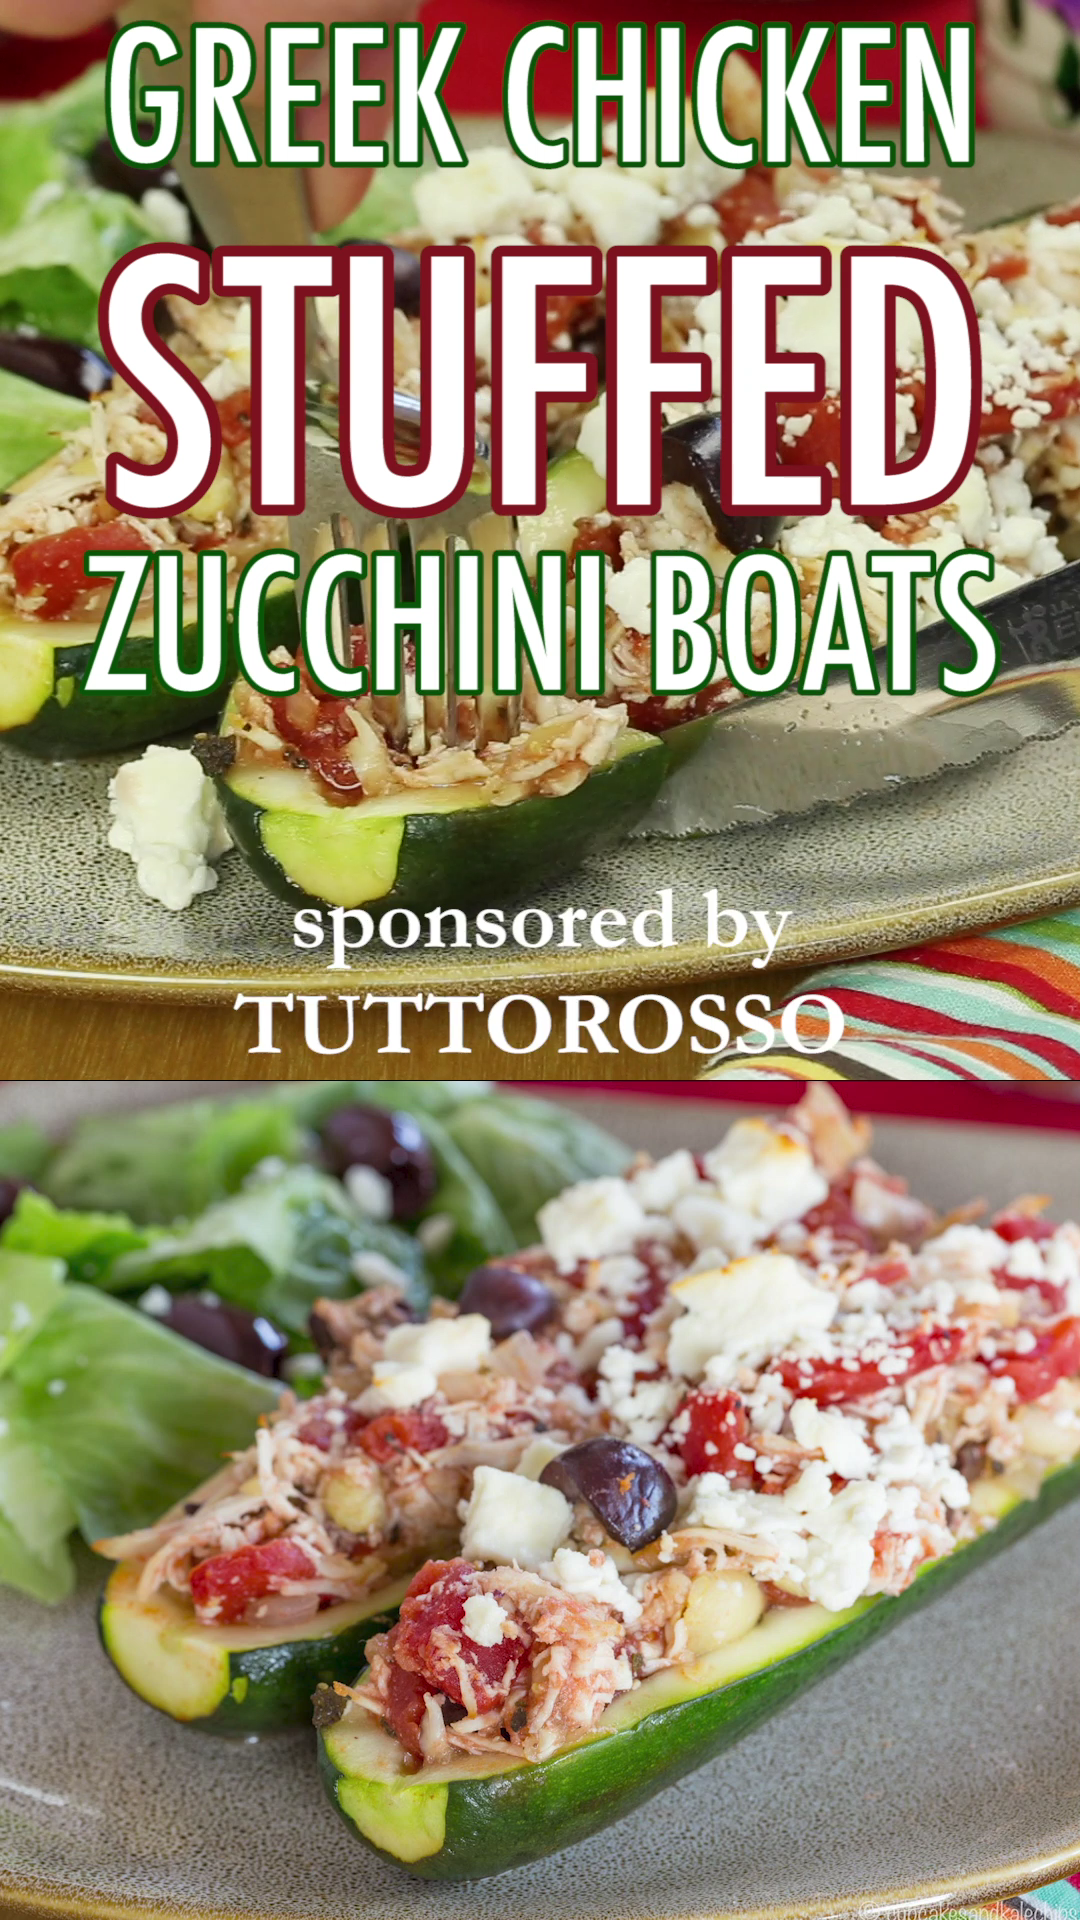 Photo of GREEK CHICKEN STUFFED ZUCCHINI BOATS